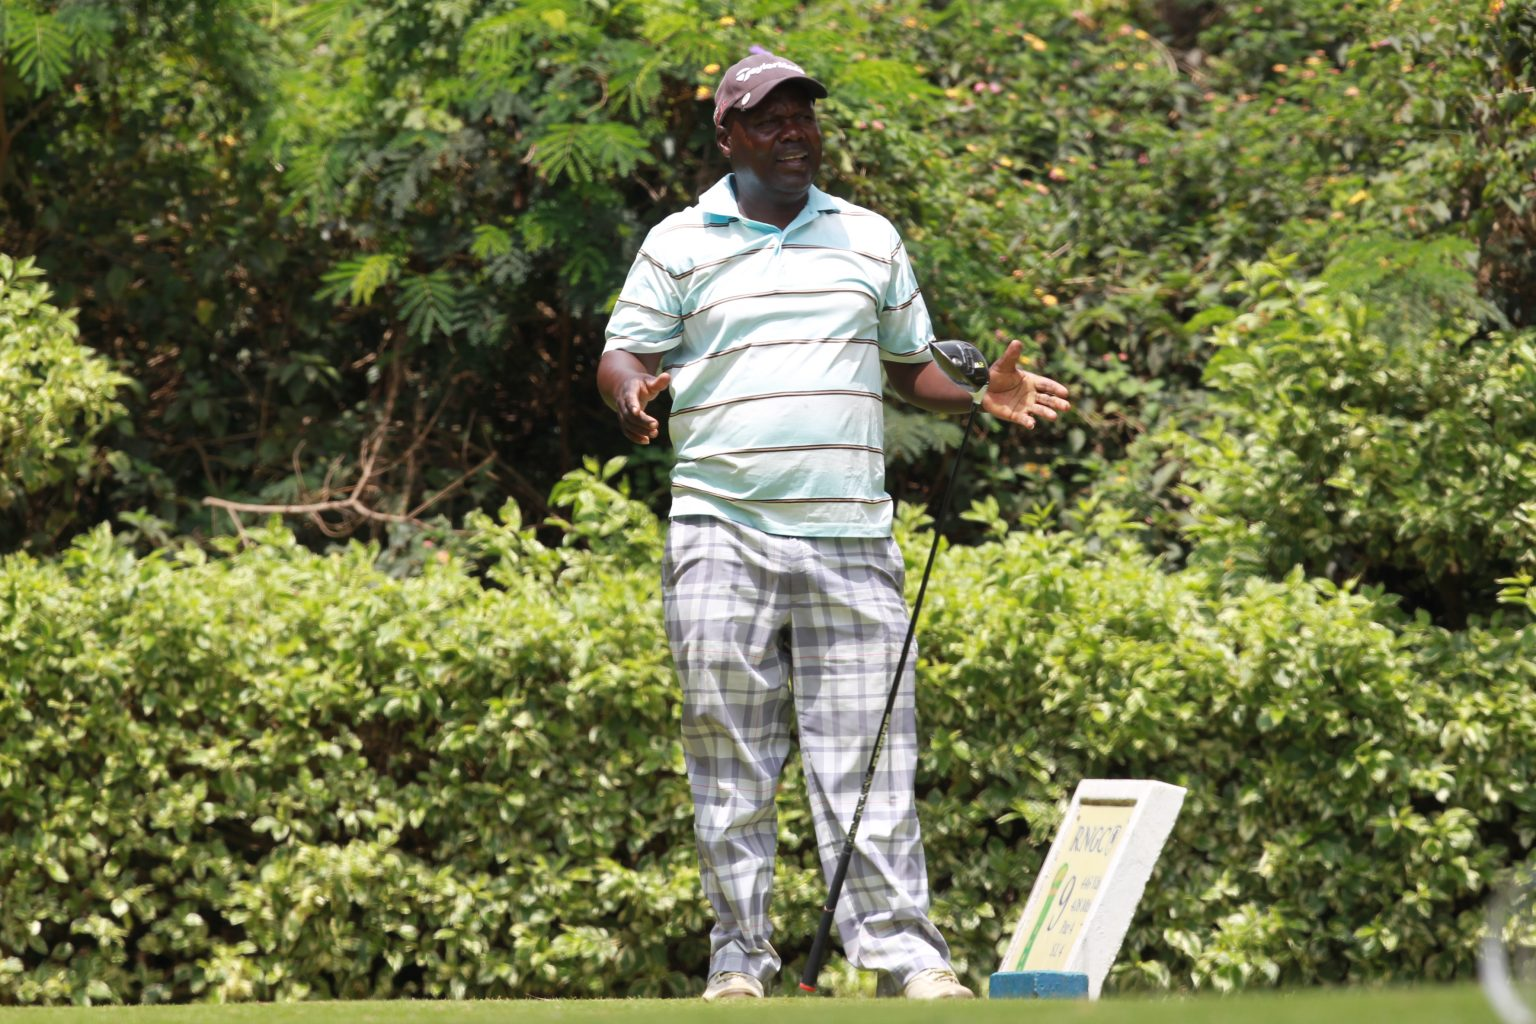 European Tour action continues in Nairobi with the Savannah Classic